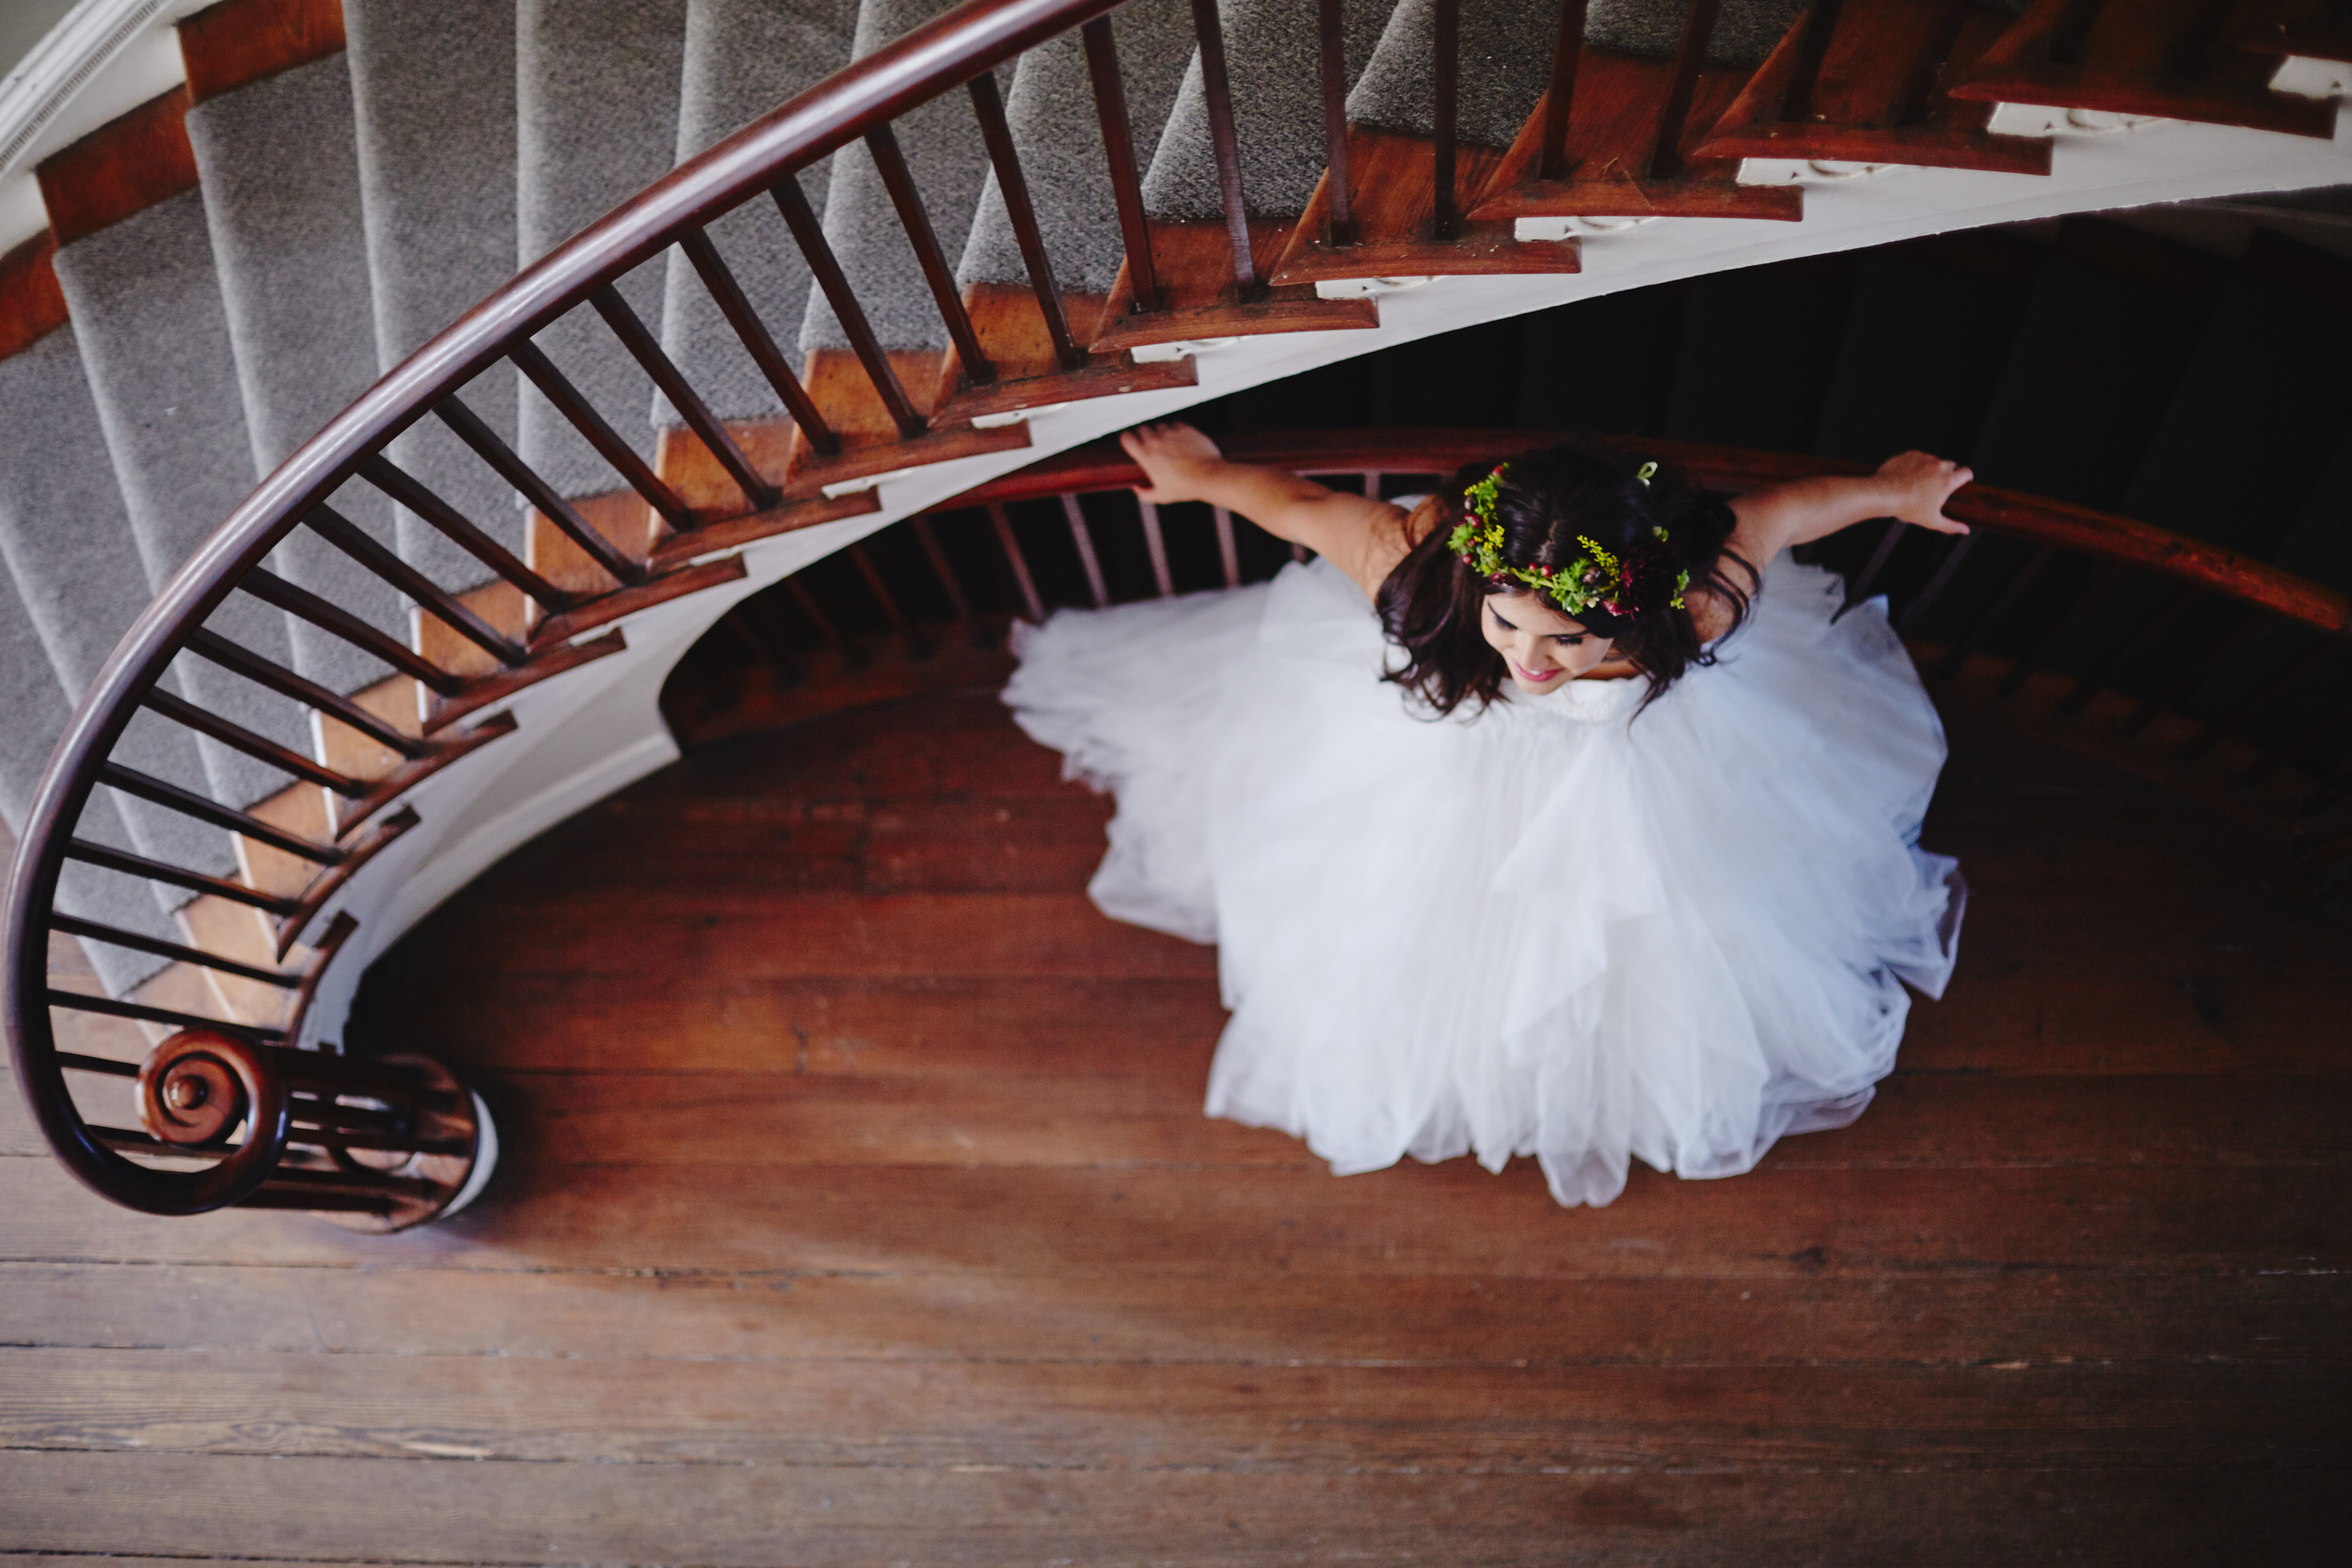 Styled_Session_Cherie_Bridal_Portraits_House_of_the_Bride 59.jpg